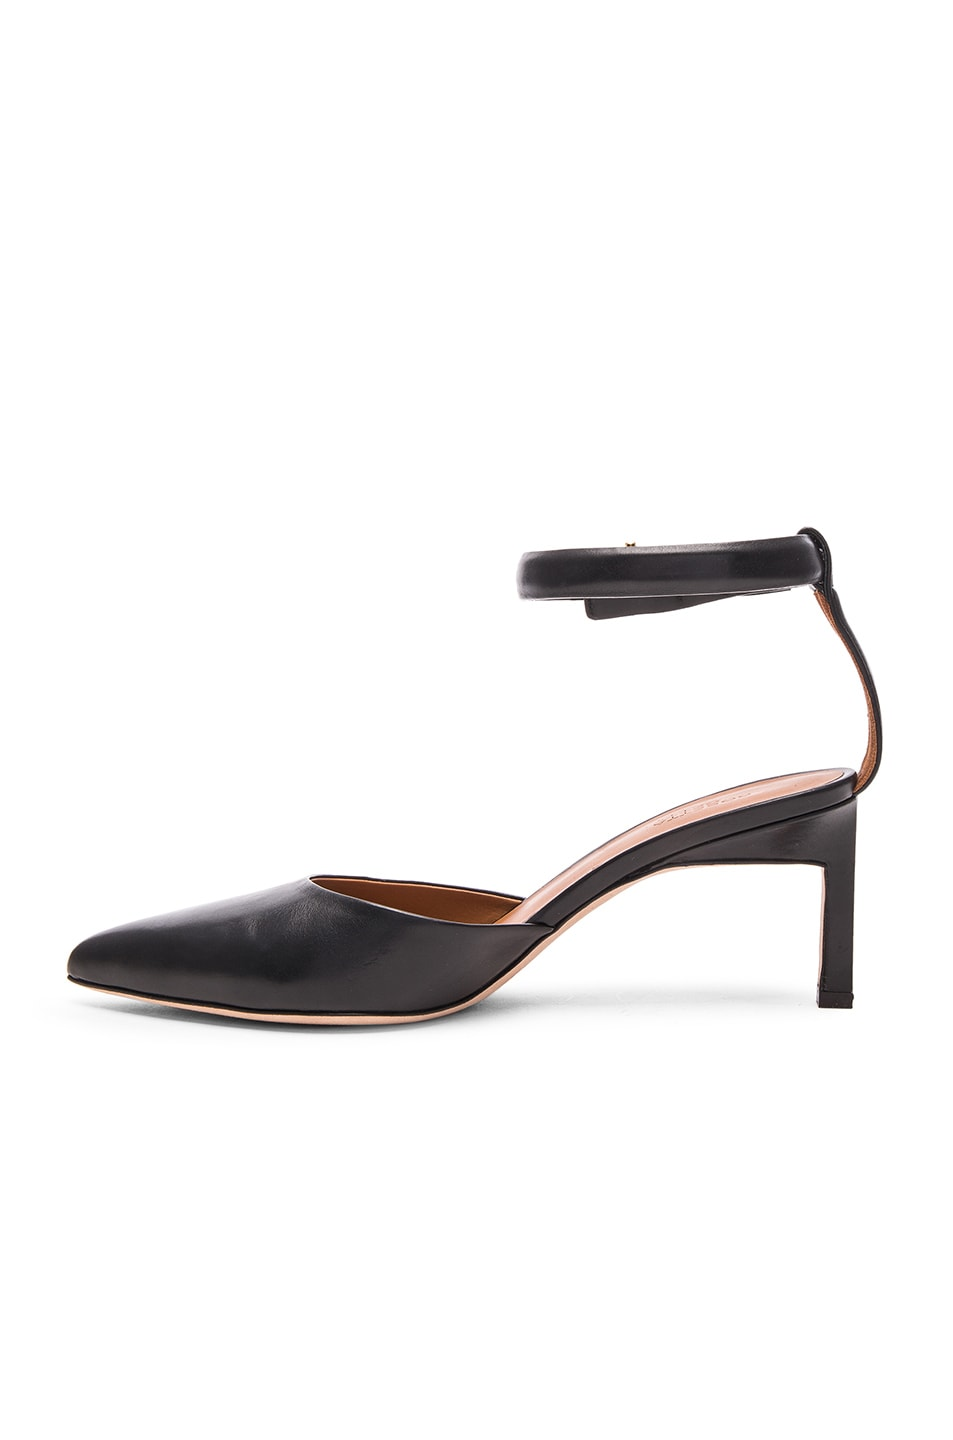 Image 5 of Rosetta Getty Leather Pointed Mid Heels in Black